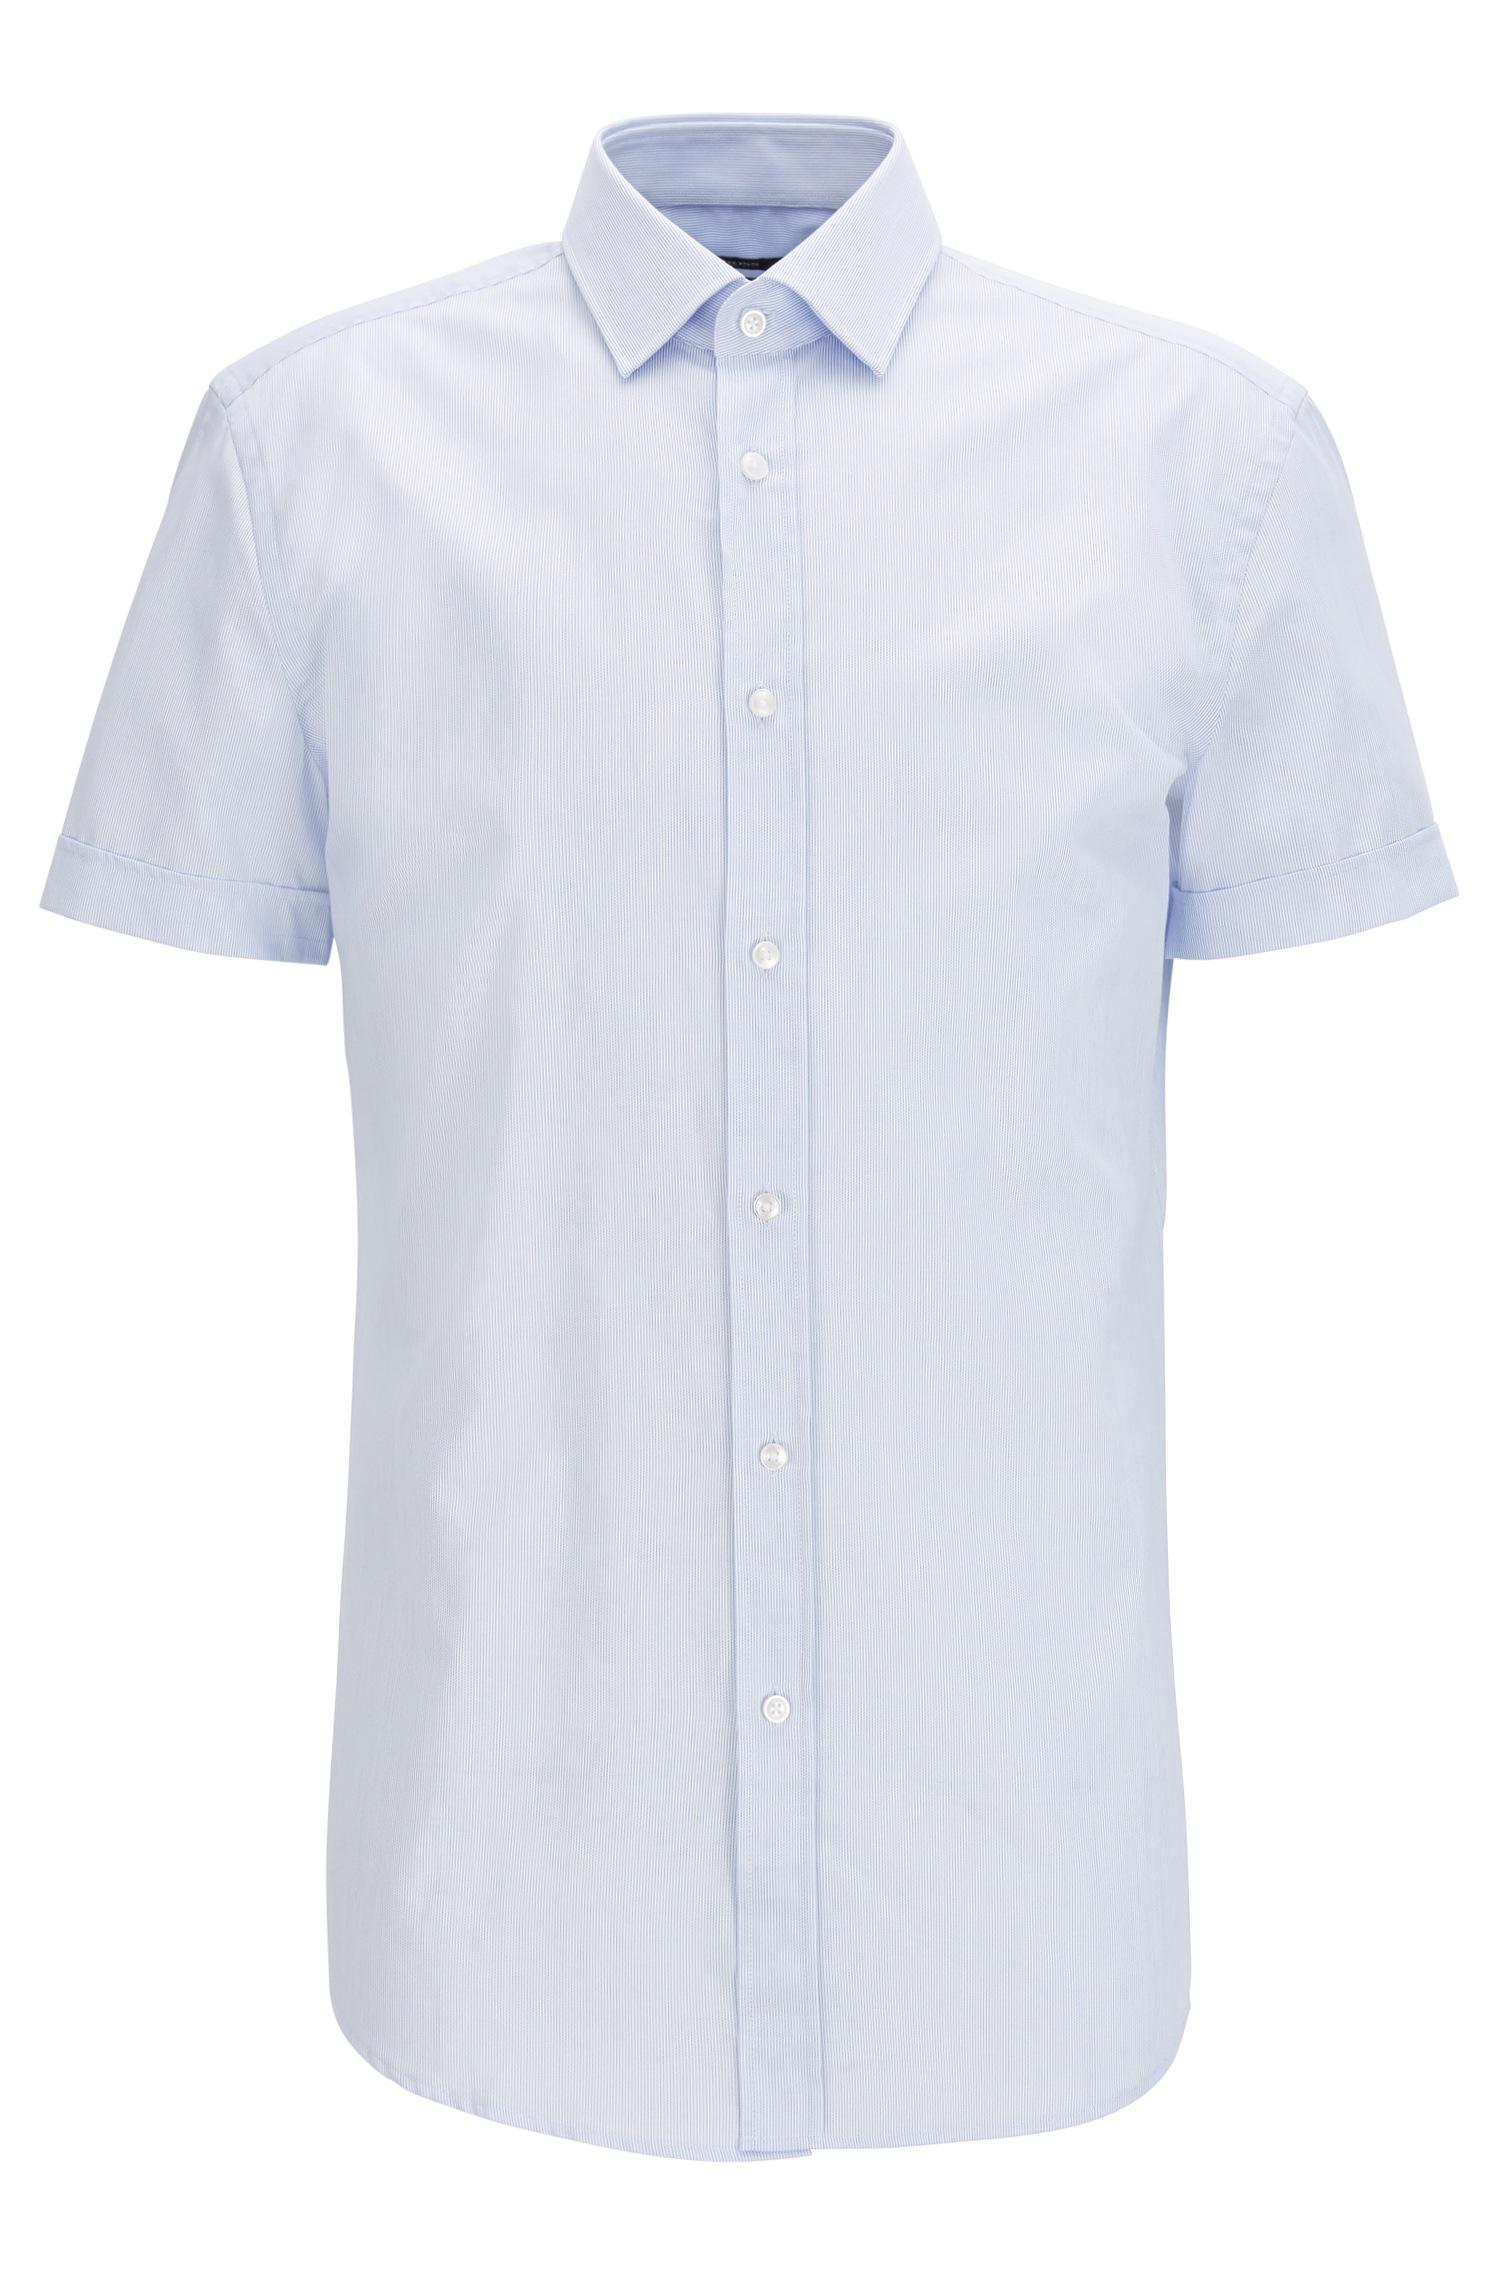 BOSS. Men's Blue Slim-fit Striped Cotton Shirt With Short Sleeves